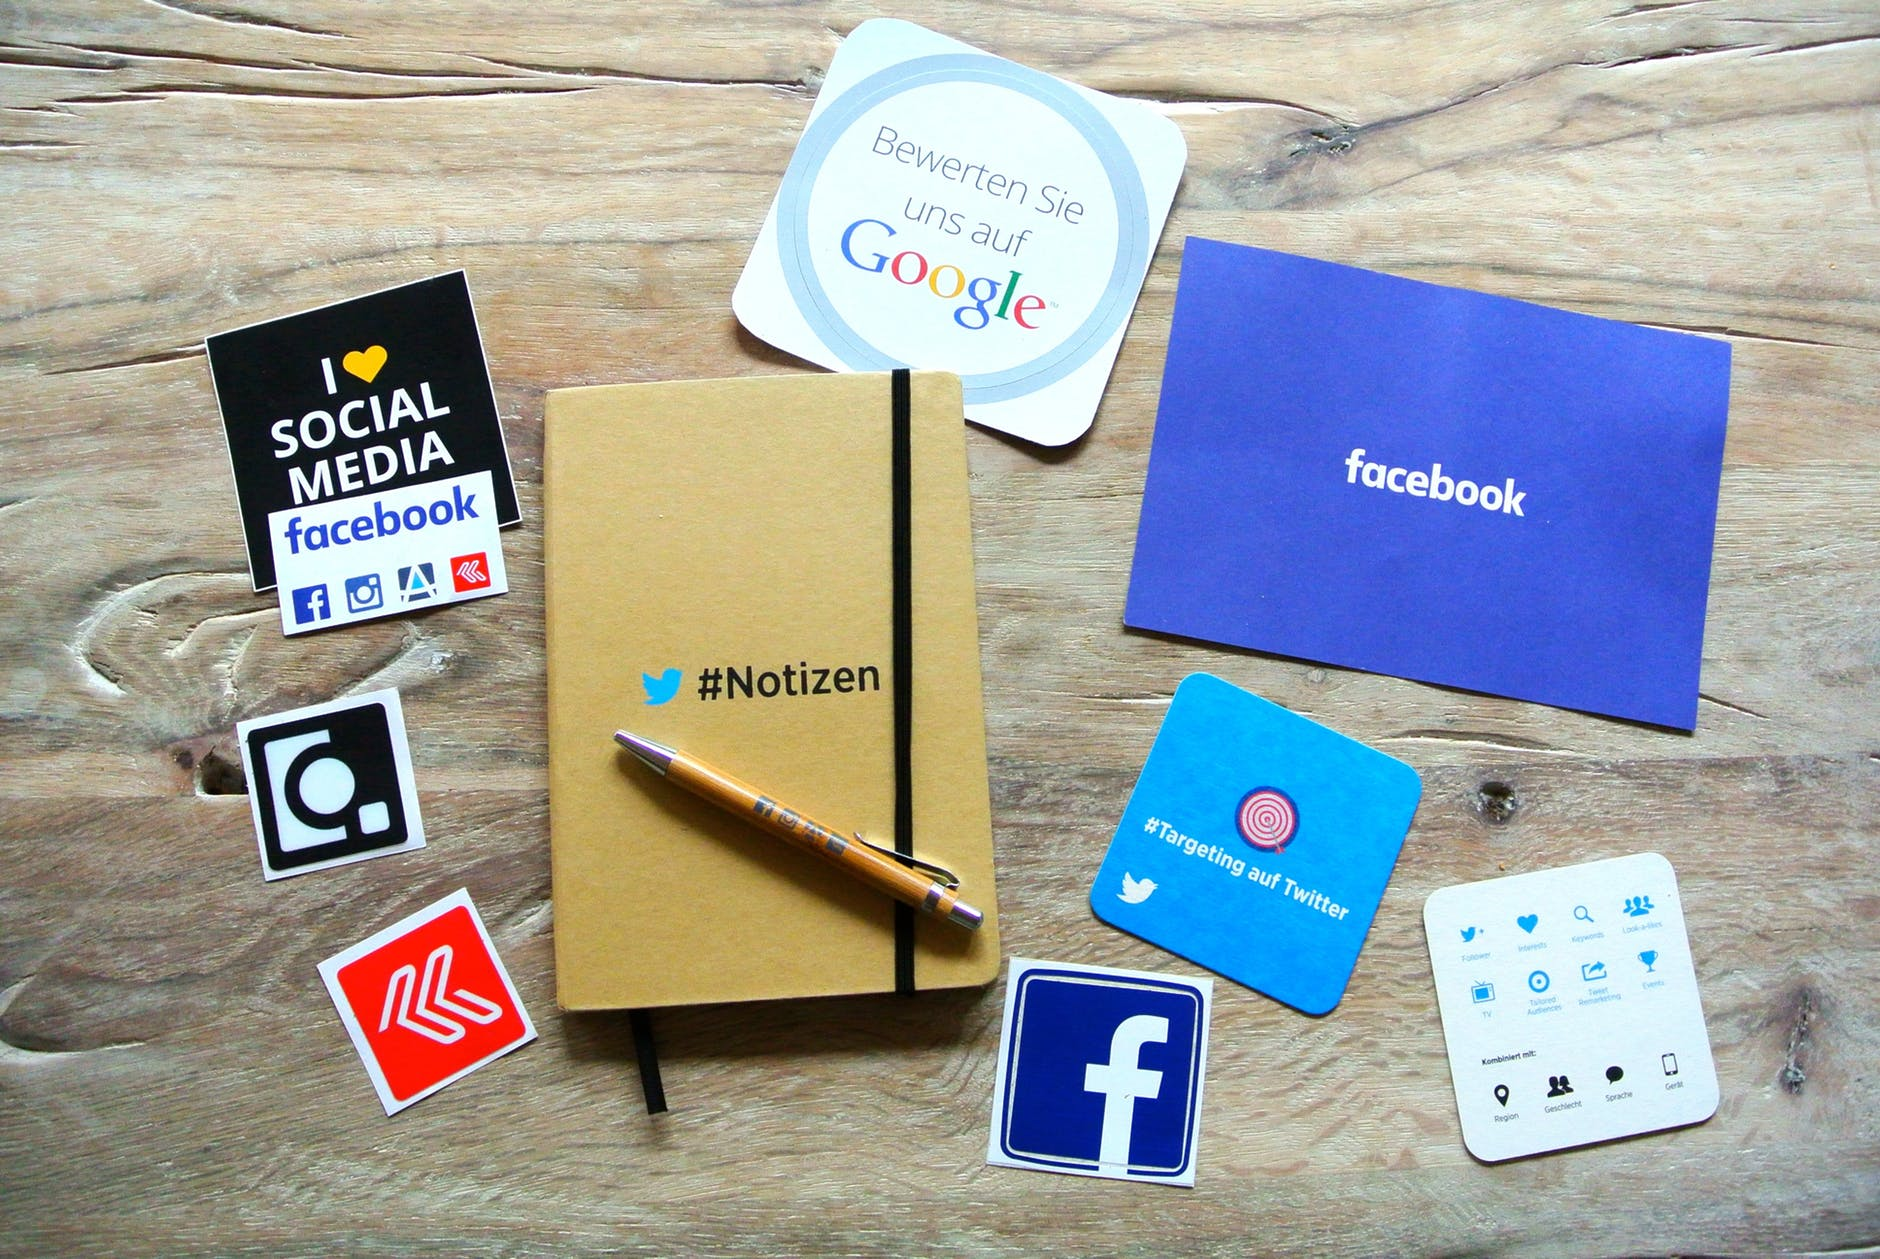 4 ways to rebrand social media